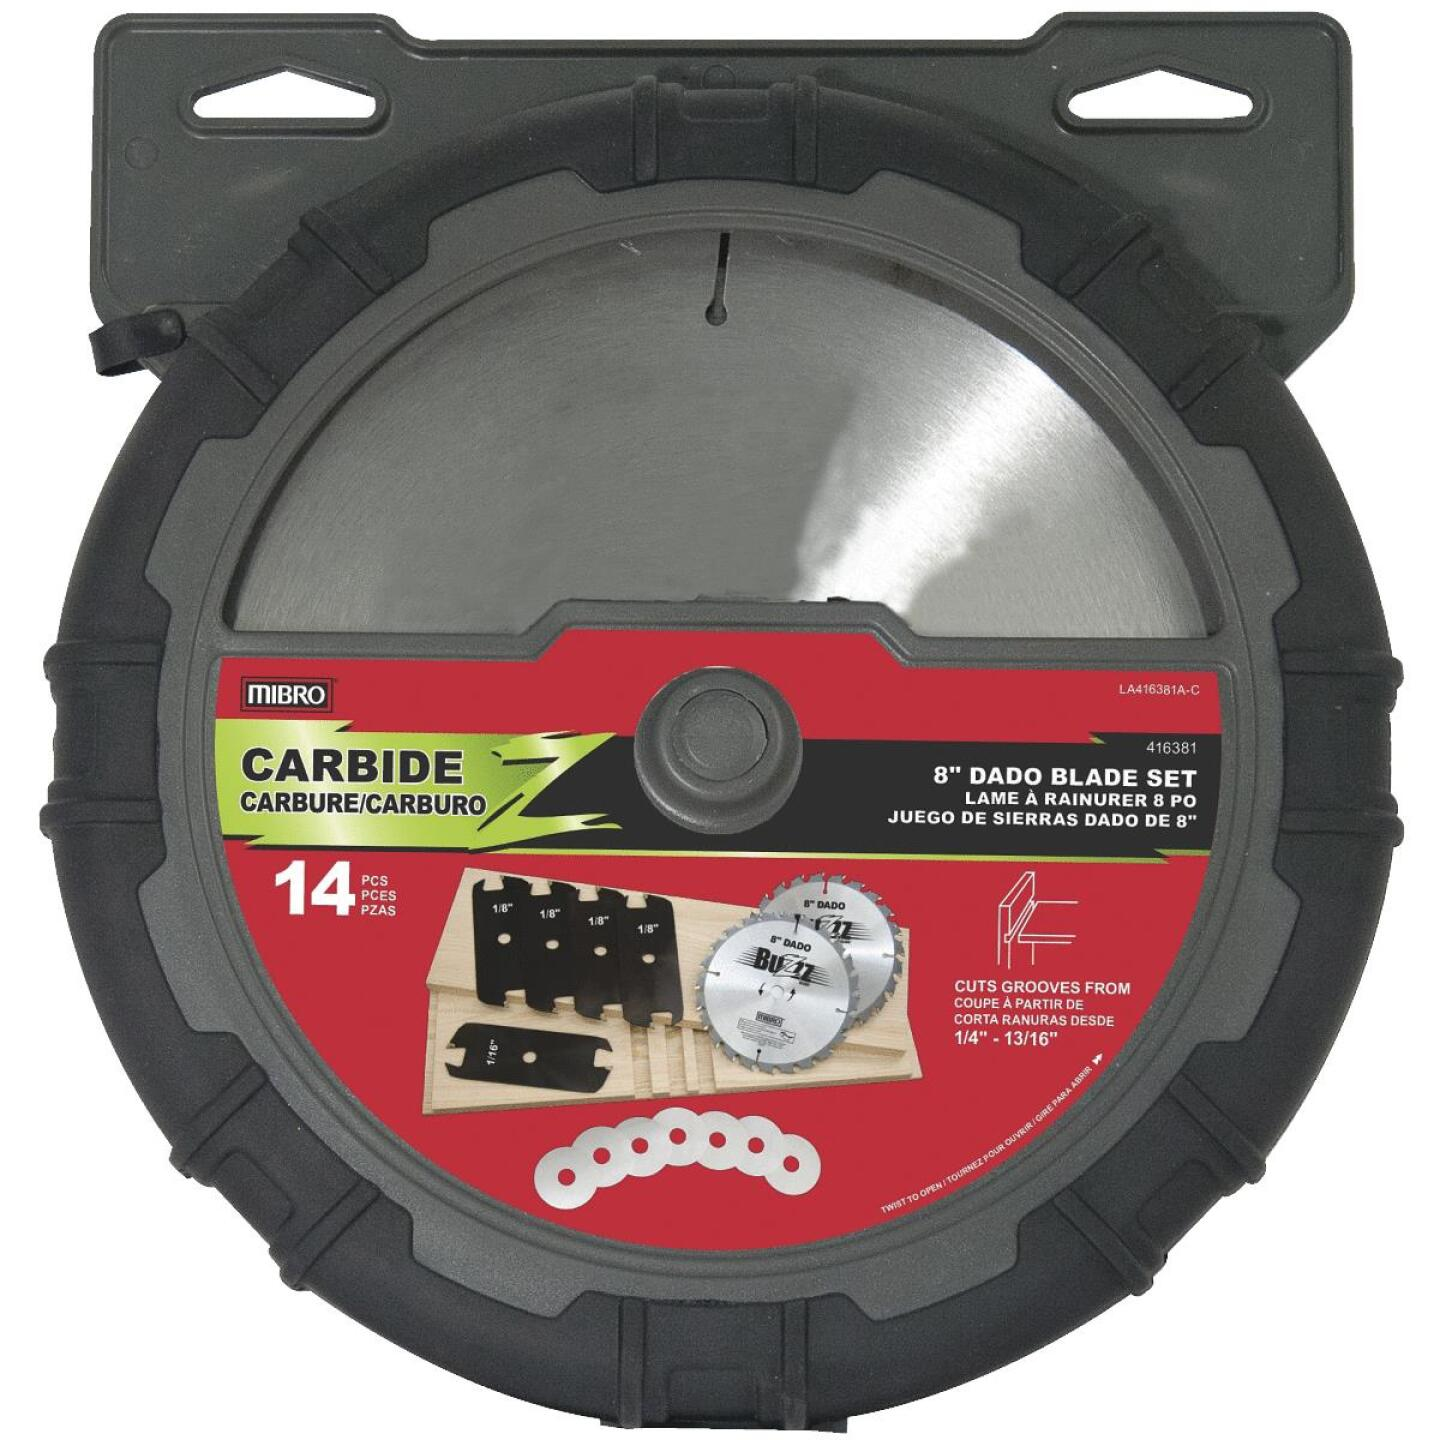 Mibro 8 In. Dado Circular Saw Blade Set Image 1